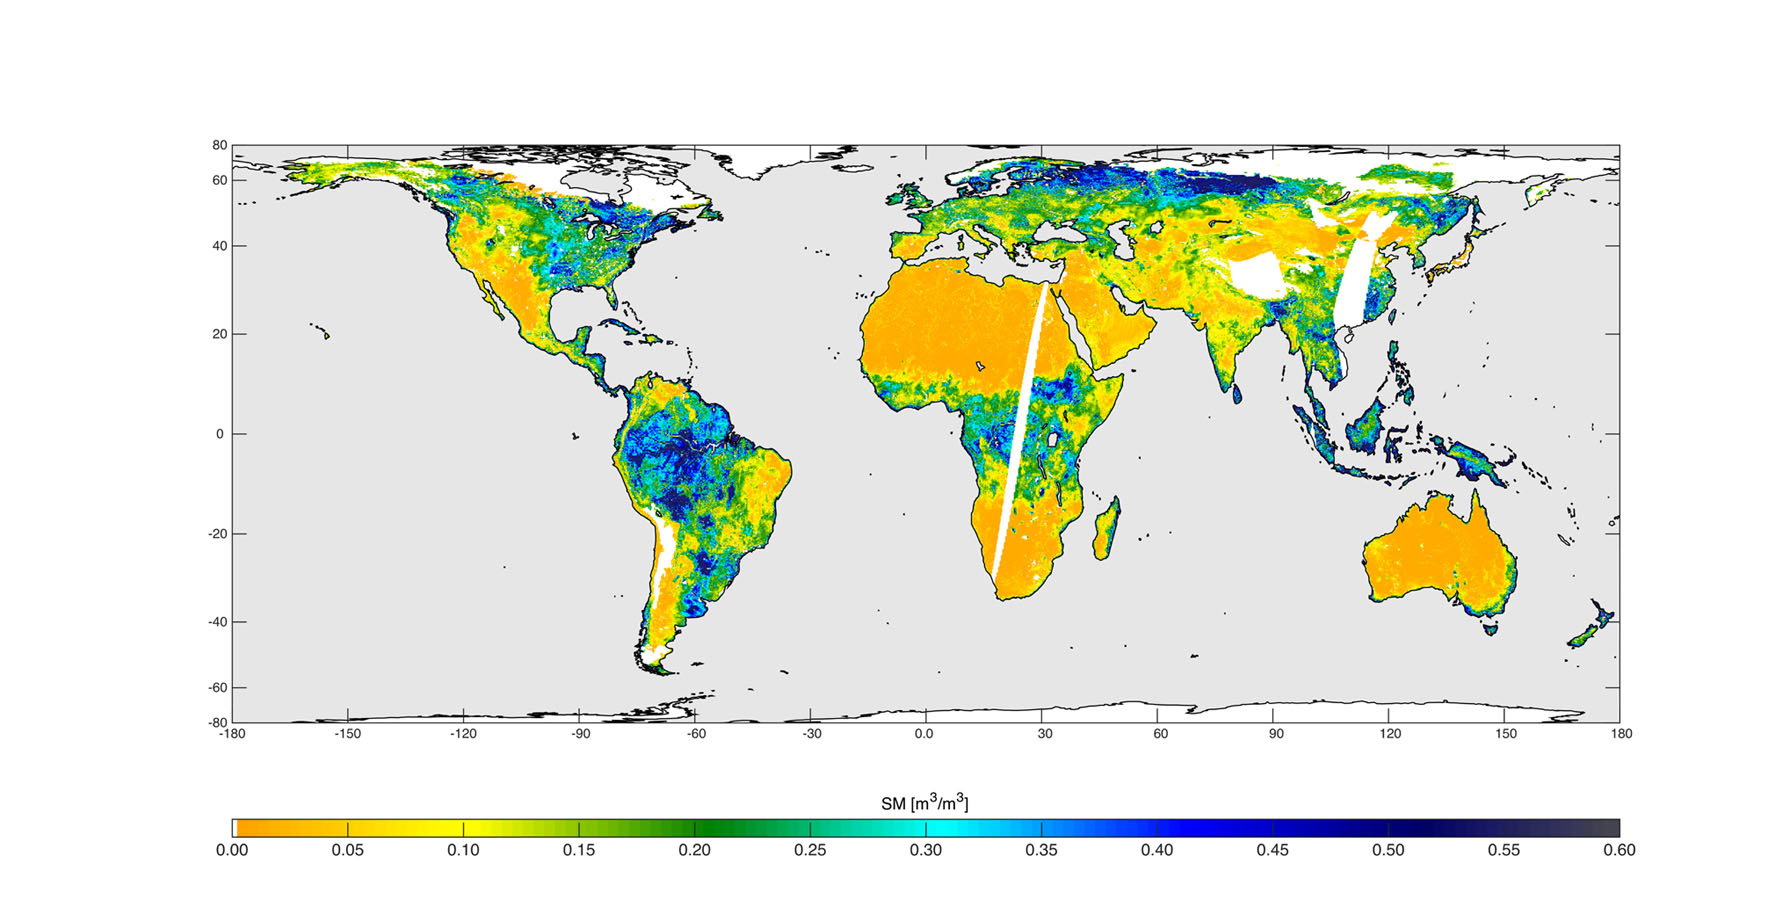 High-resolution global soil moisture map from NASA SMAP's combined radar and radiometer instruments, acquired between May 4 and May 11, 2015 during SMAP's commissioning phase.